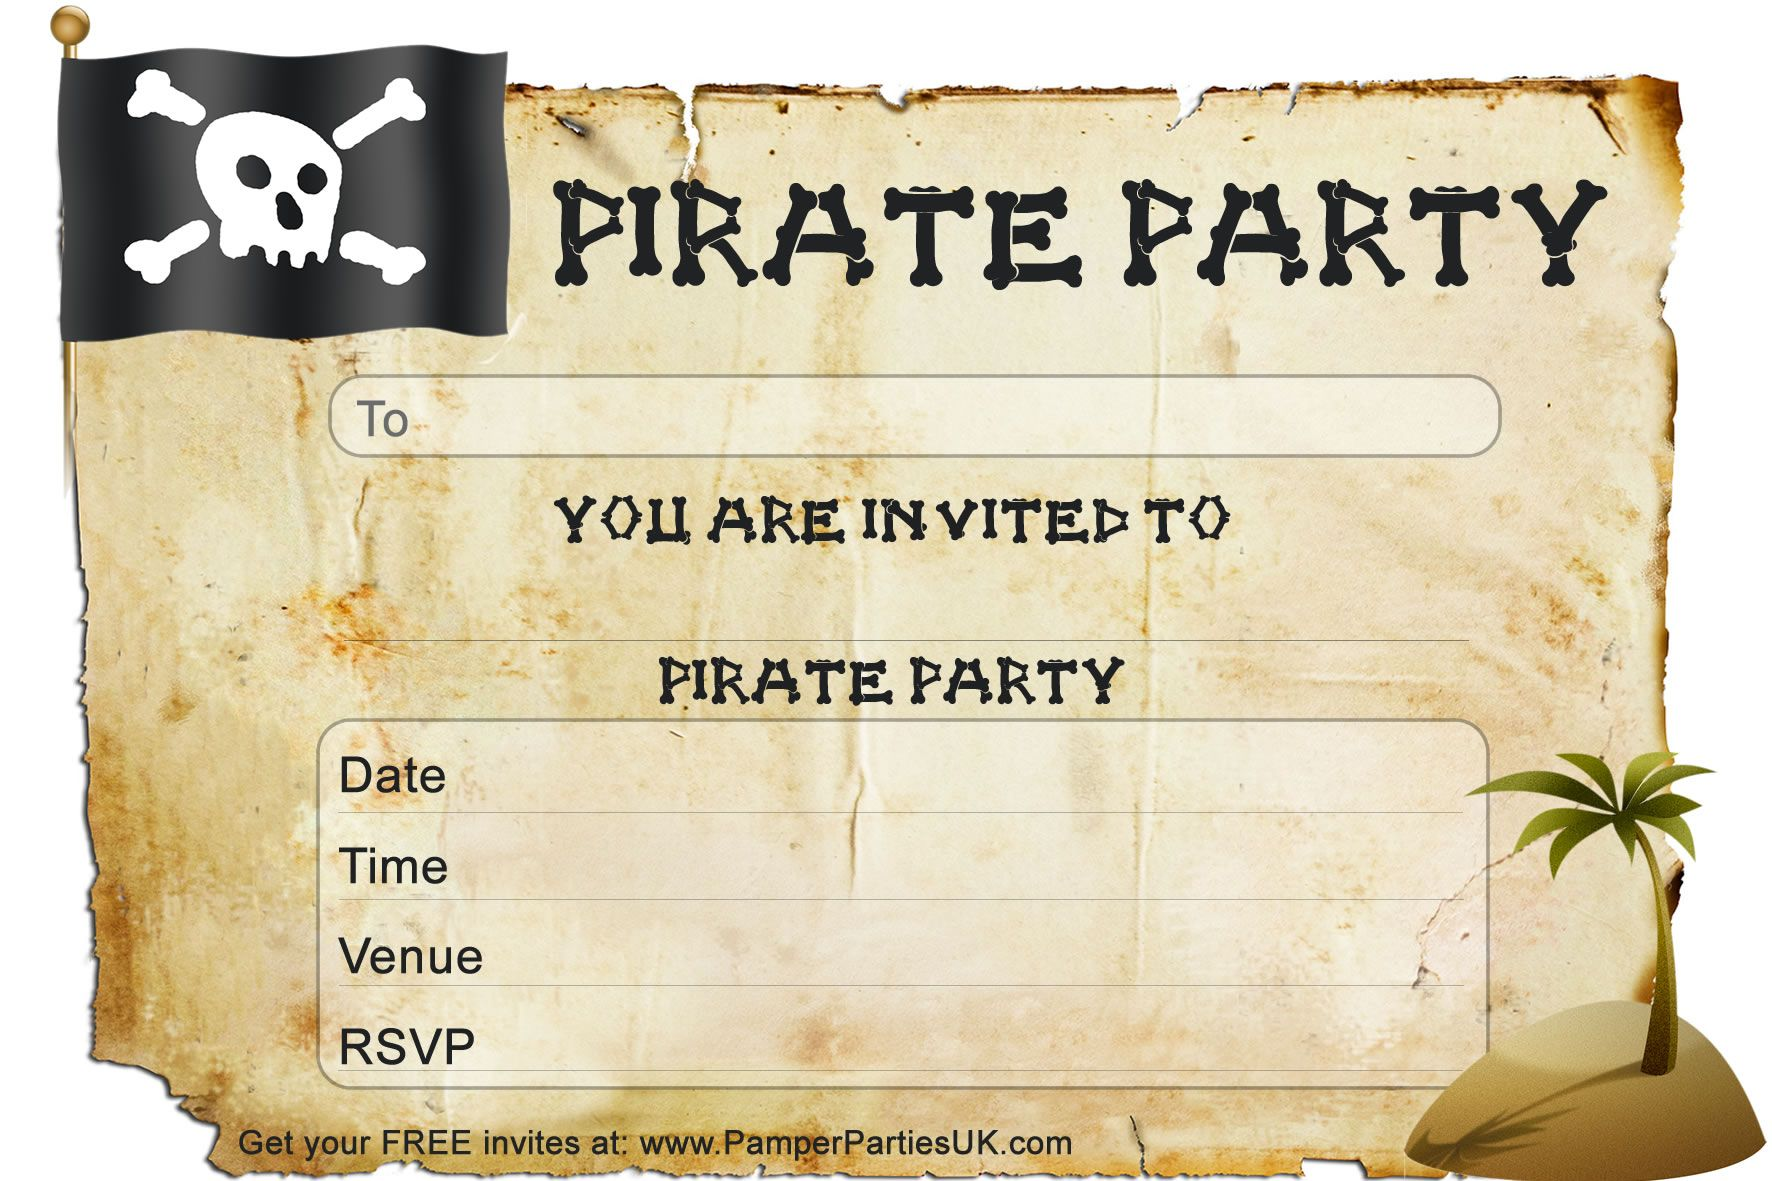 Free Pirate Party Invitations – Free Pirate Party Invitations